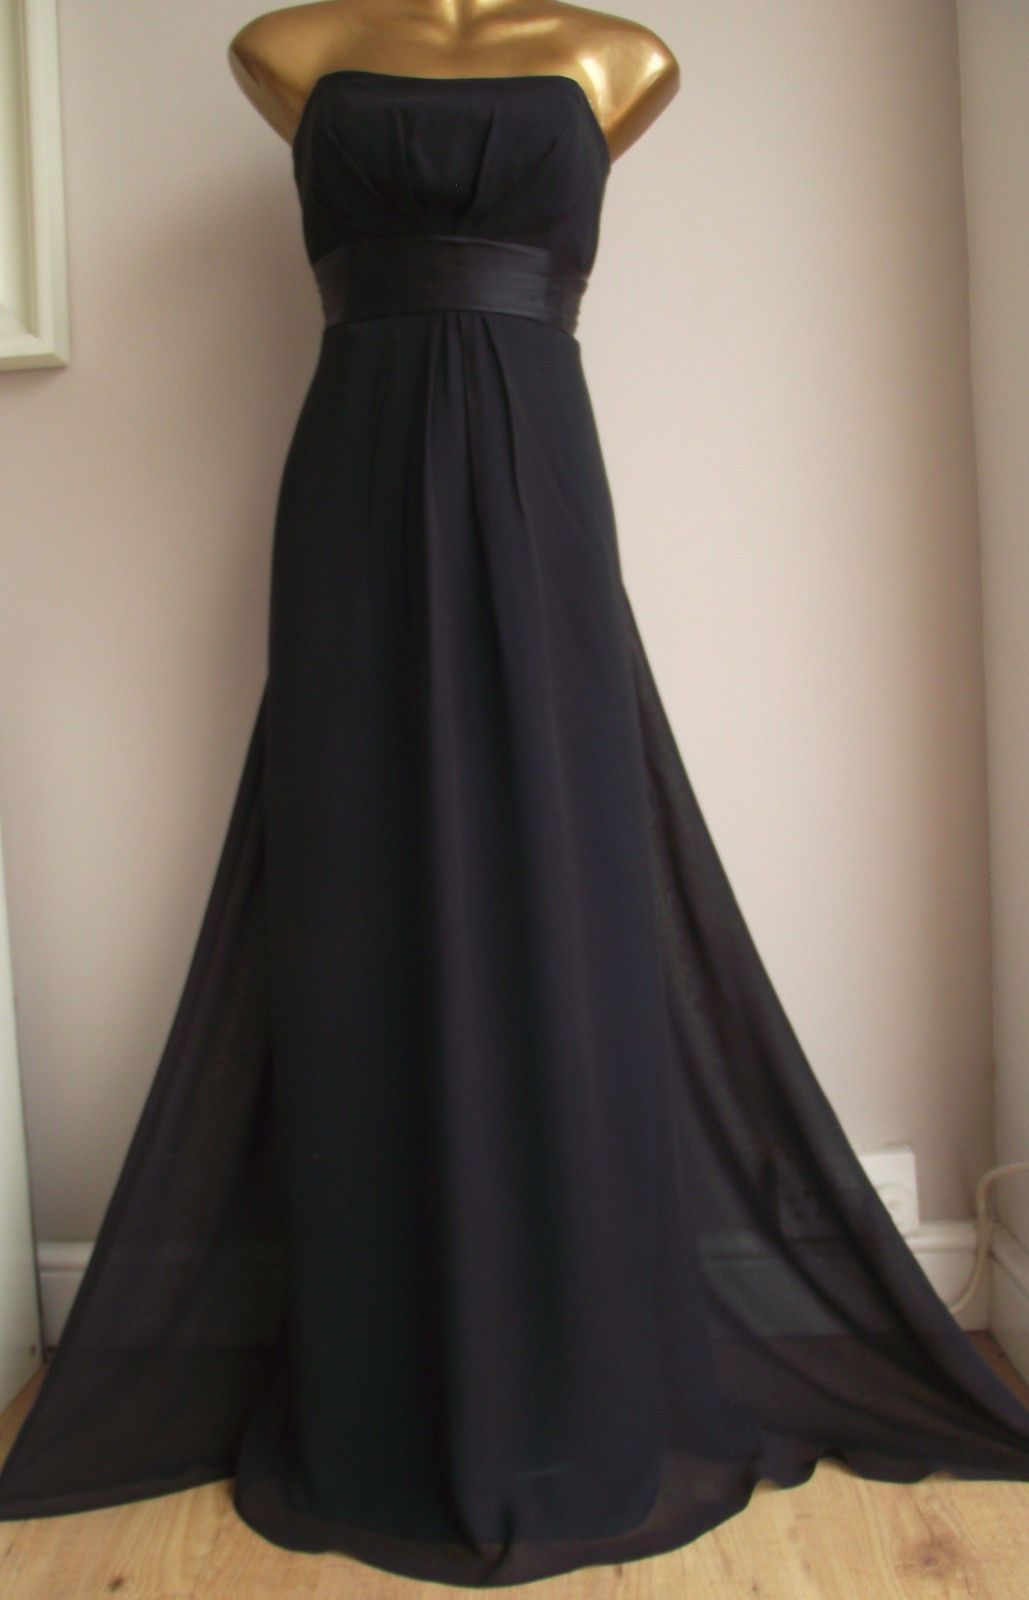 Cool amazing monsoon silk black green lined occasion eve cruise